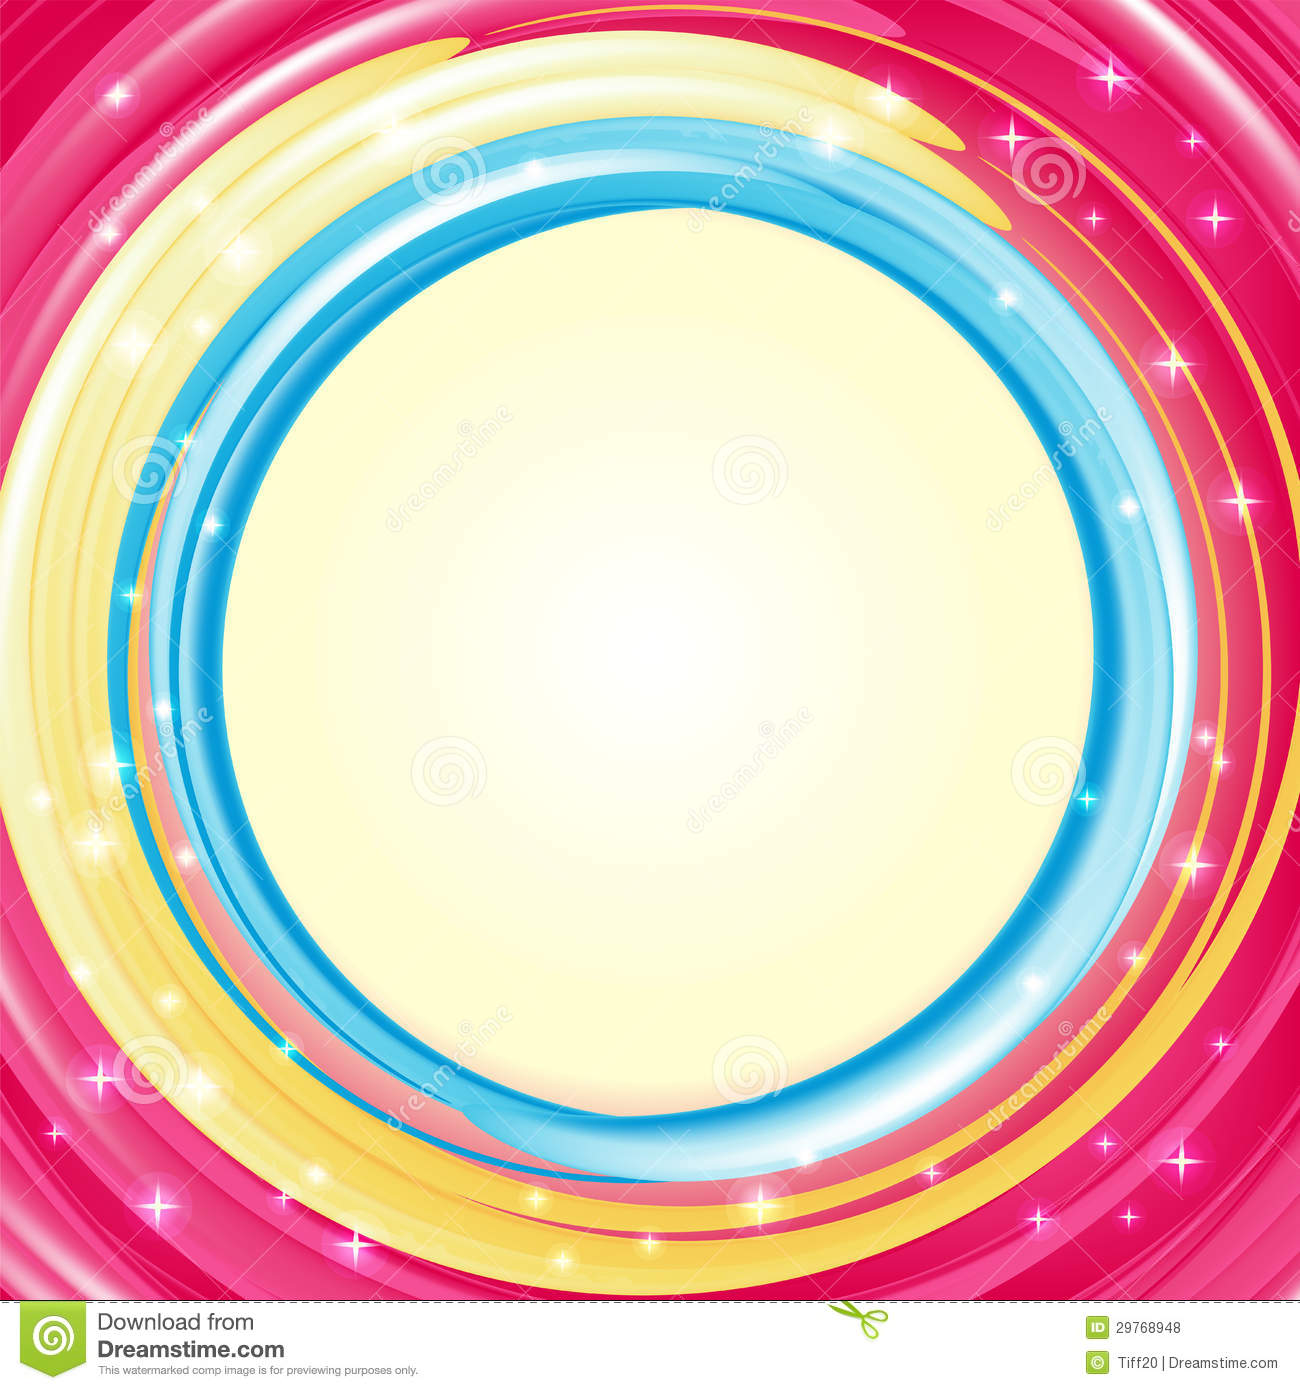 Background Stock Vector Illustration Of Circle Shiny